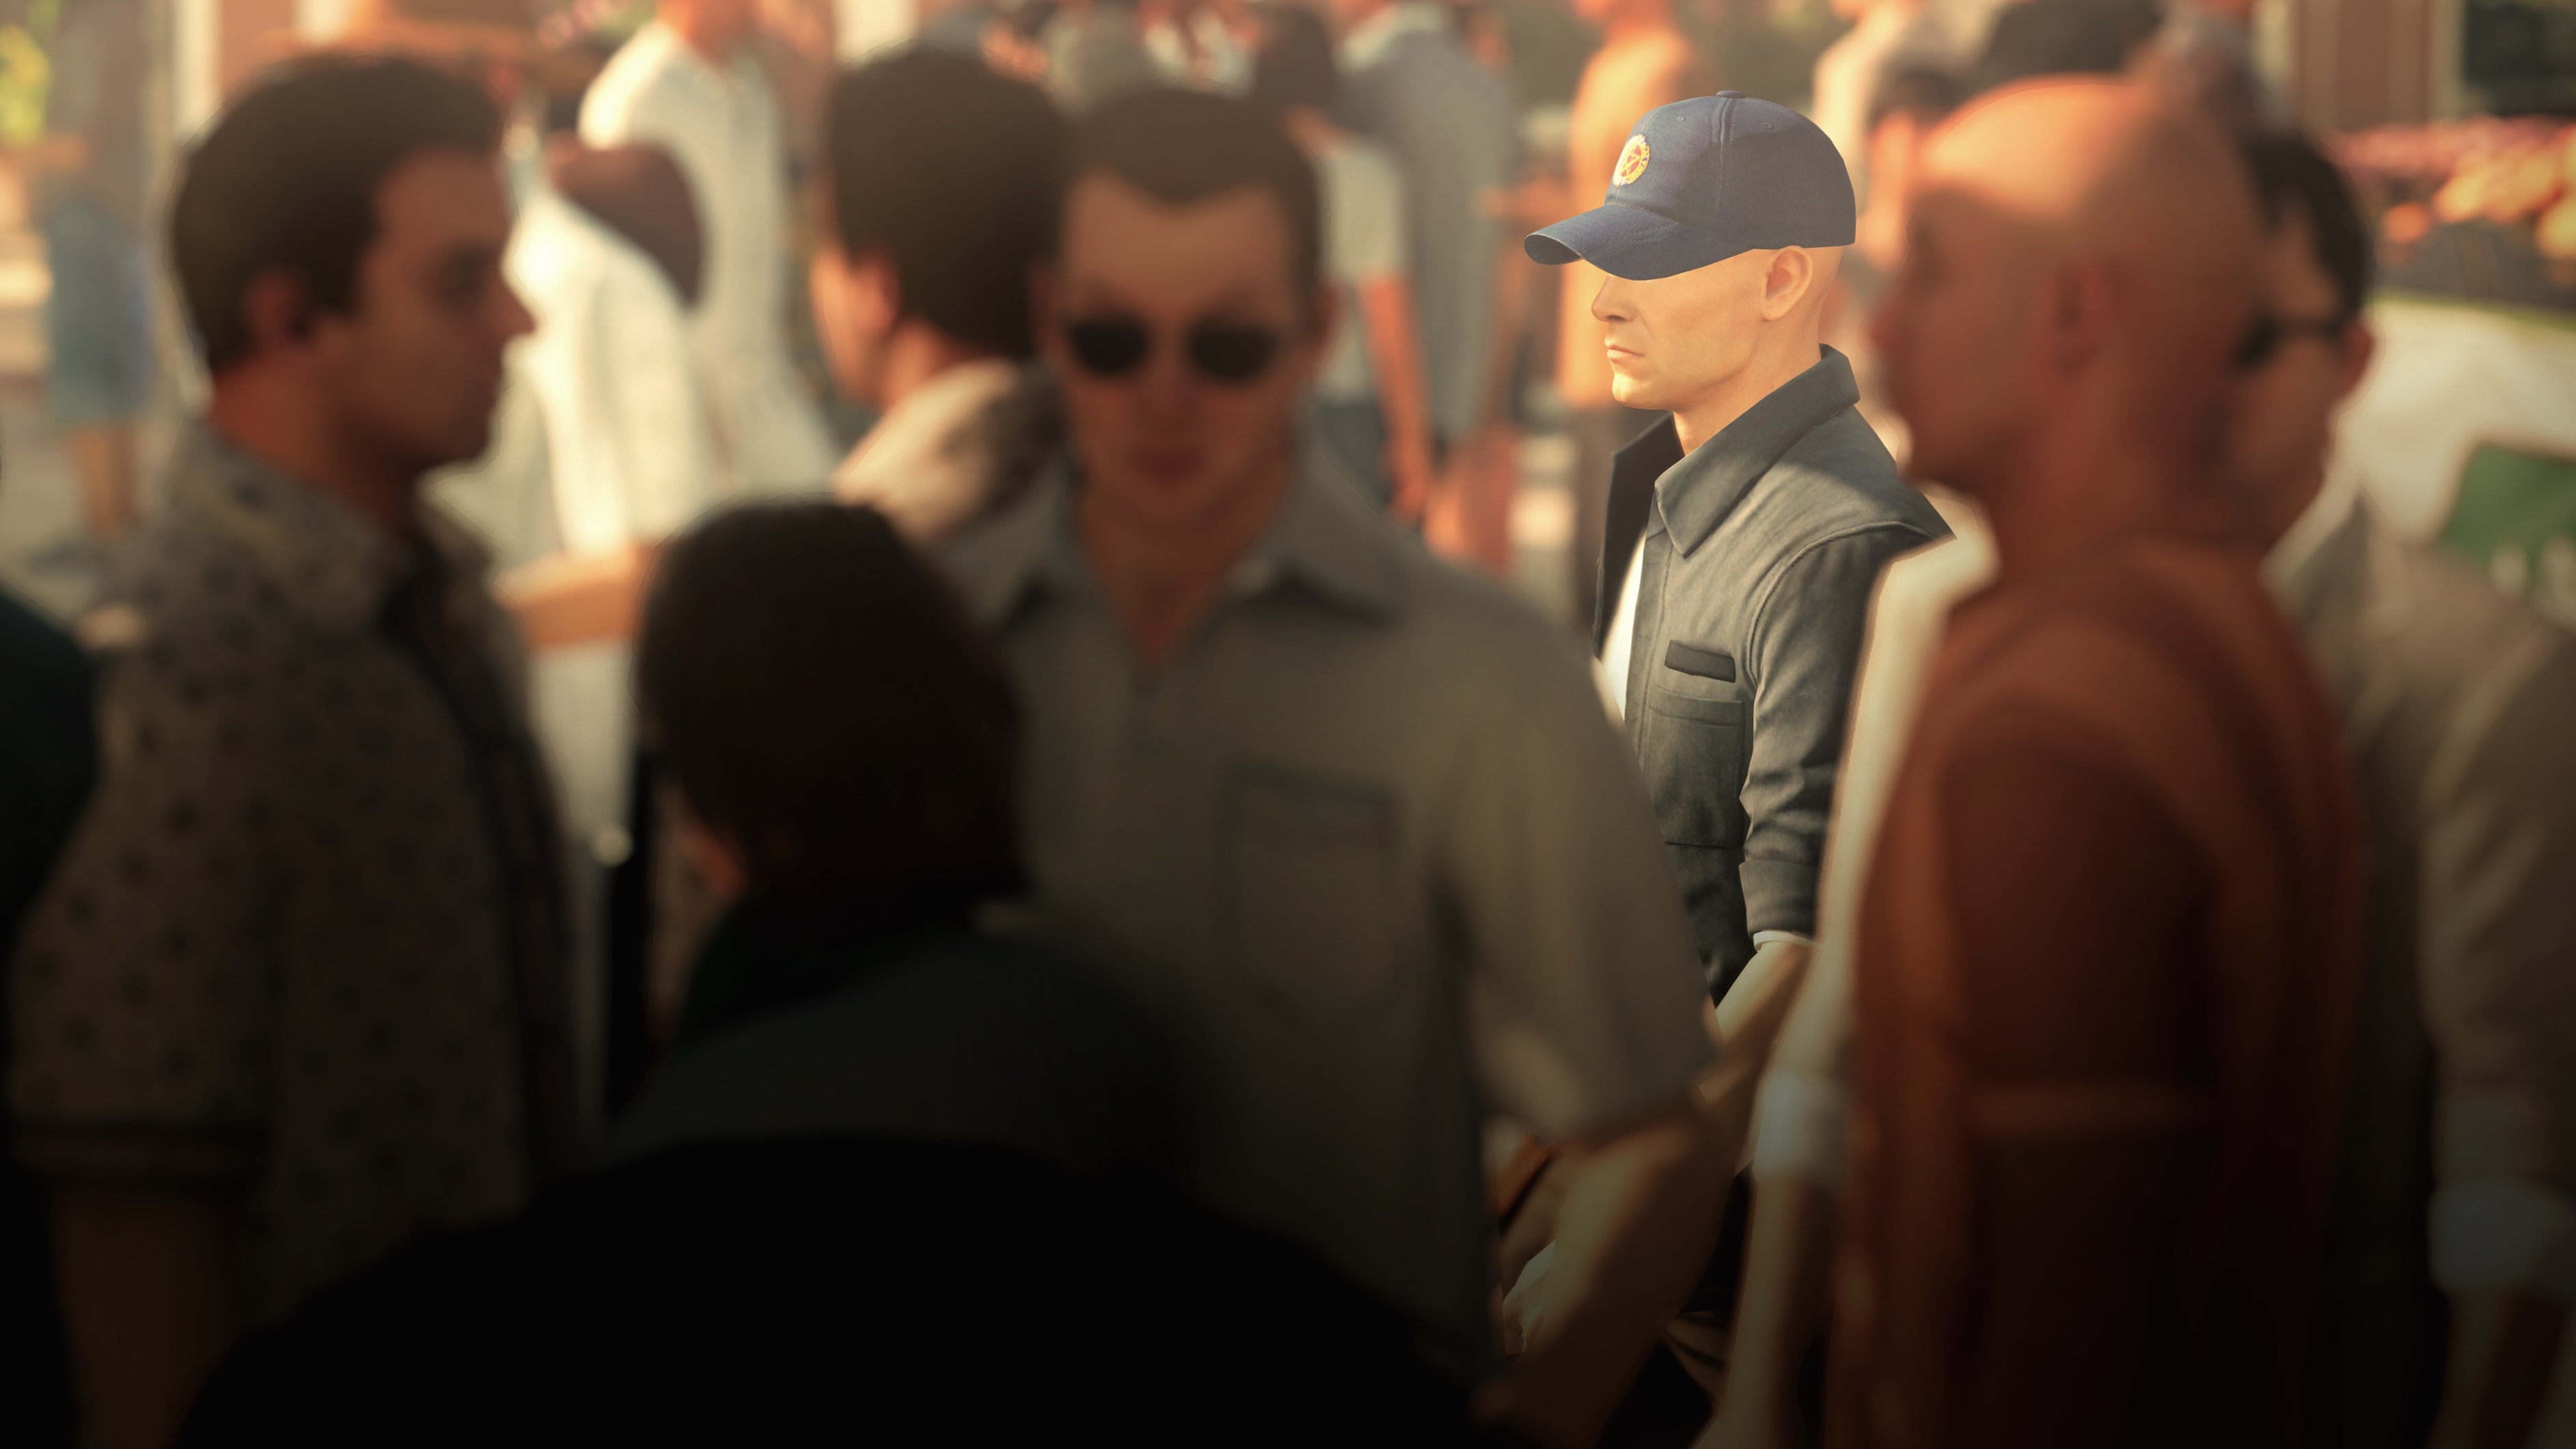 Hitman 2 gameplay - crowd